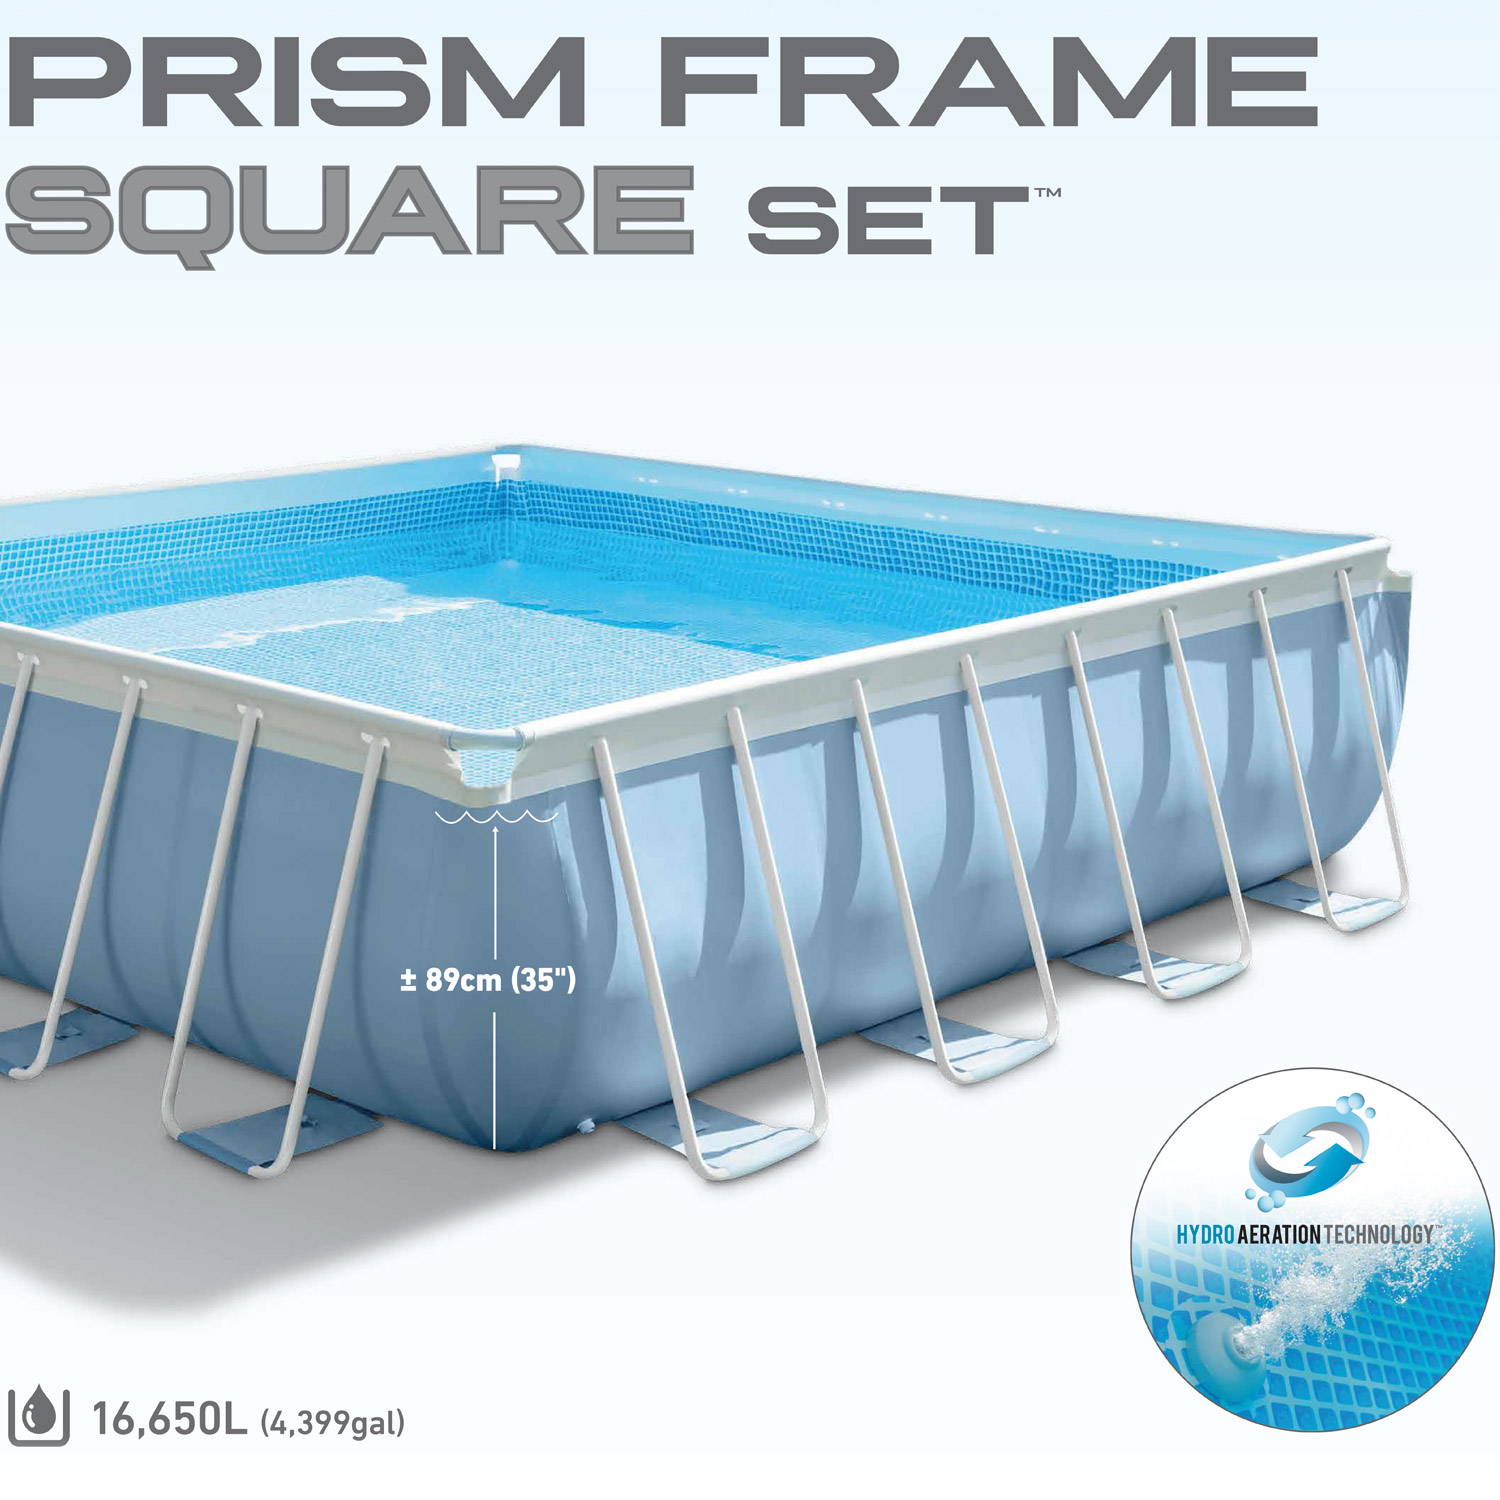 Frame pool set prism karo 427 x 427 x 107 cm for Pool set angebote